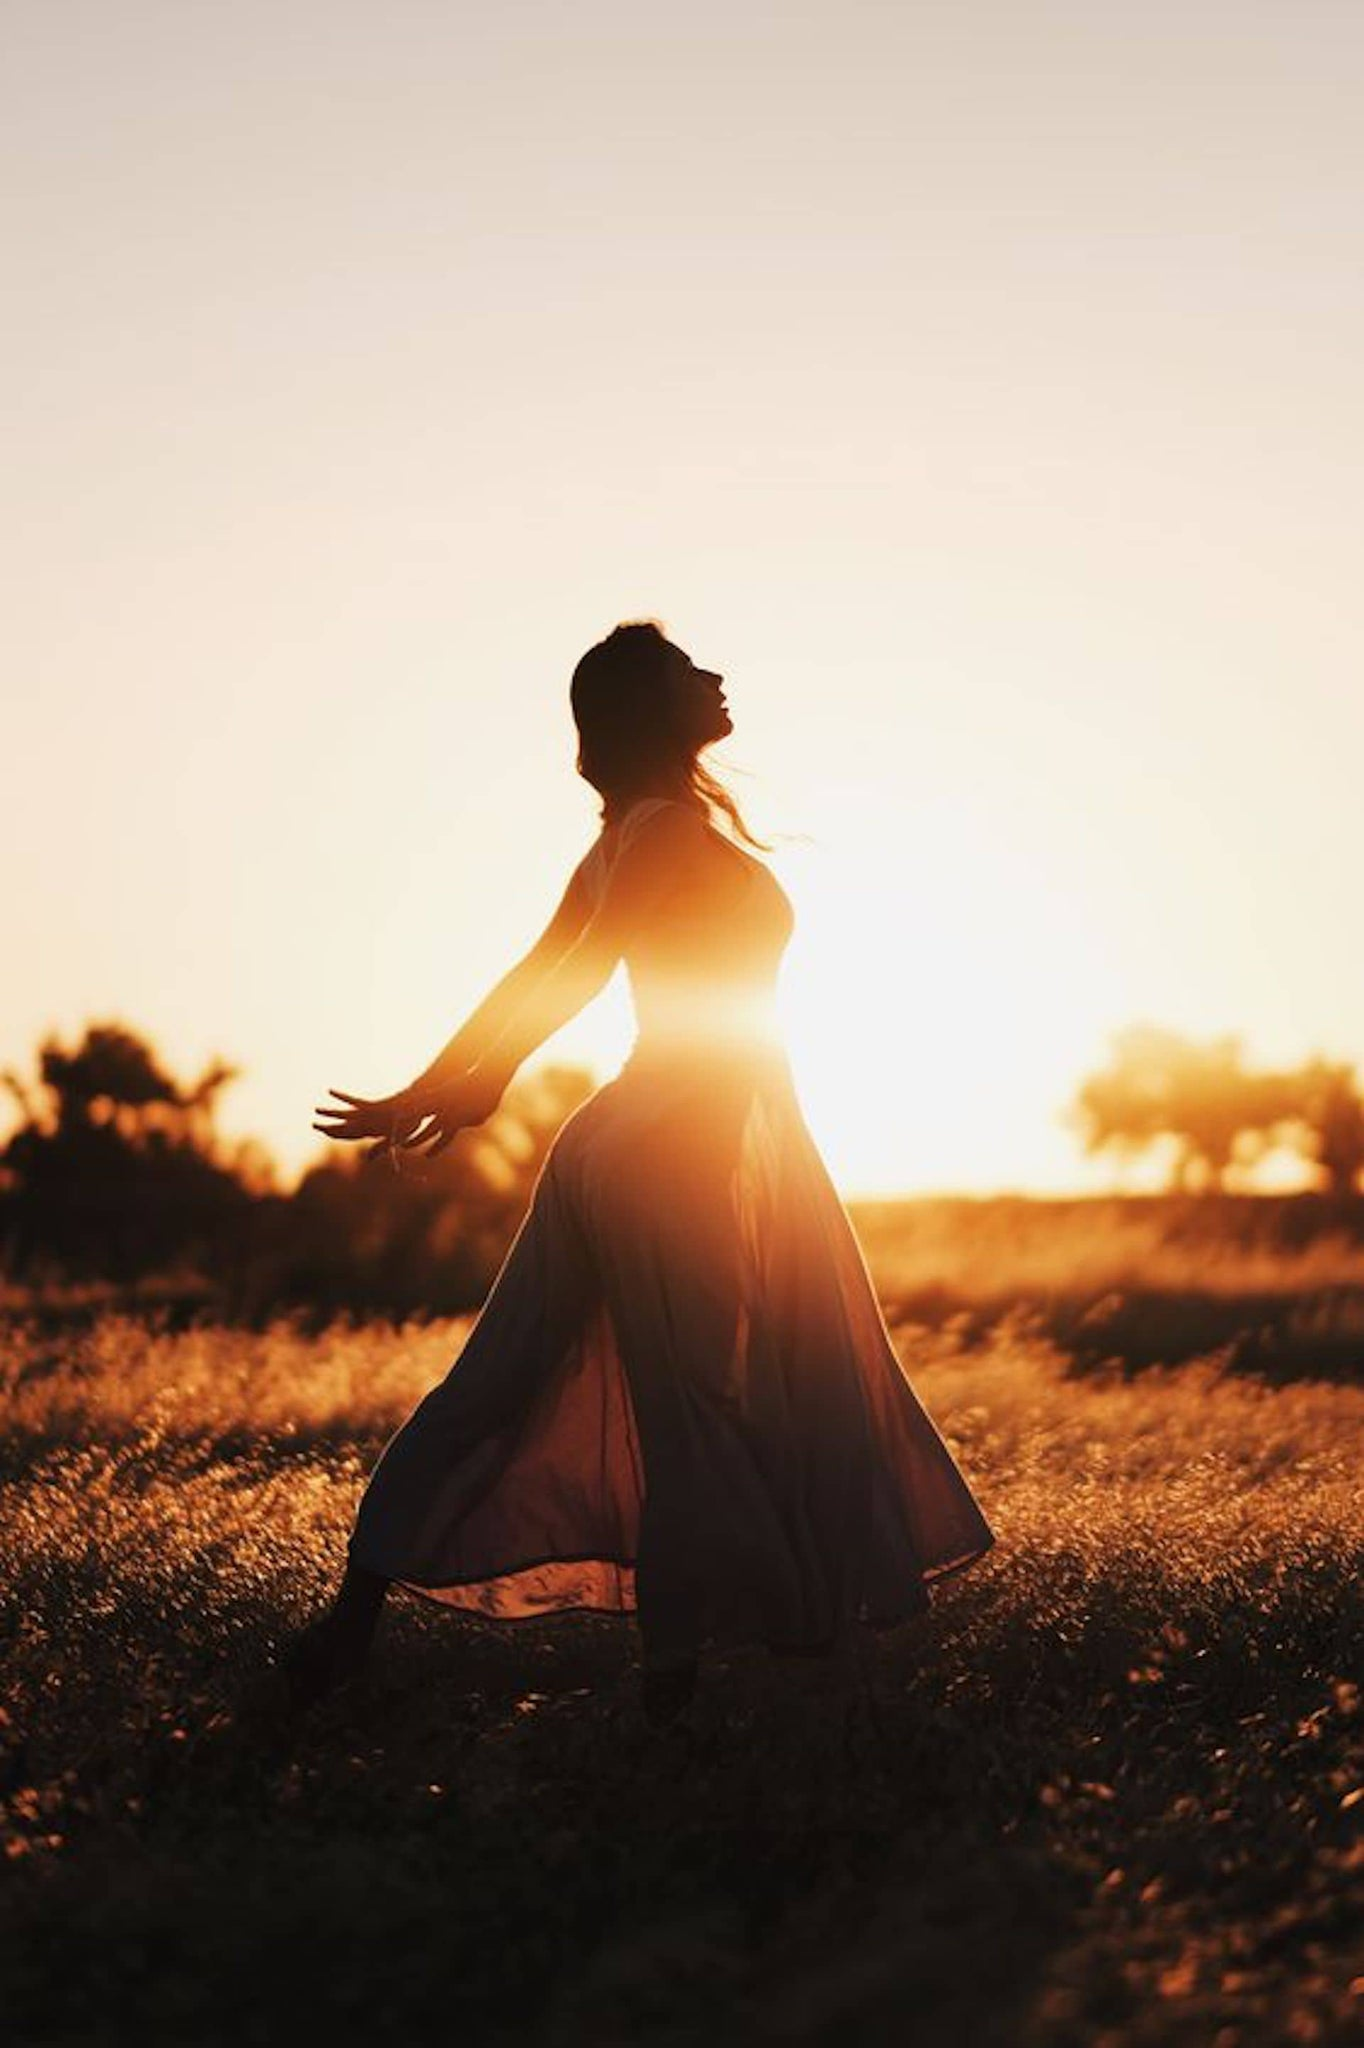 Silhouette Ambient Lighting Photography — Shutter Speed in Field — Sunny 16